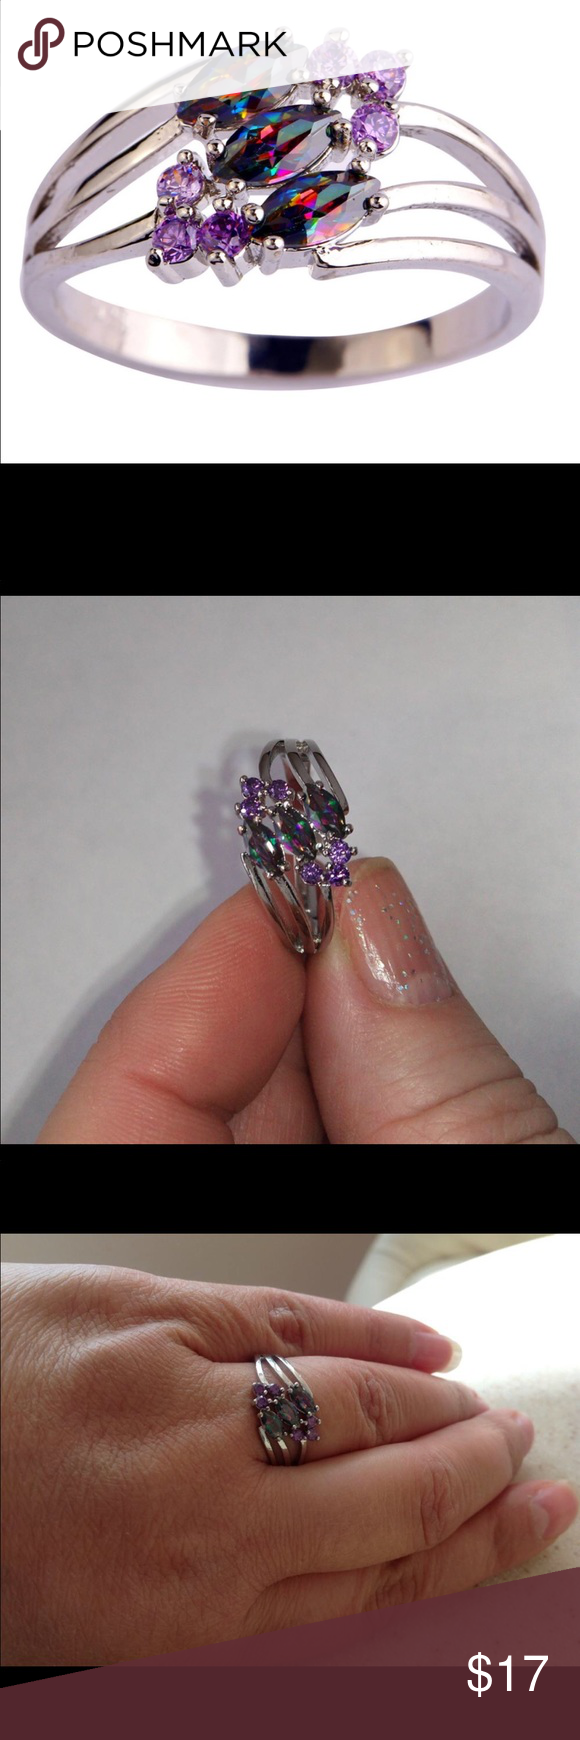 Purple CZ Silver Color Ring Women Jewelry Size 6 lingmei New Nice Arrival Mysterious Multi-Color & Purple CZ Silver Color Ring Women Jewelry Size 6 Jewelry Rings